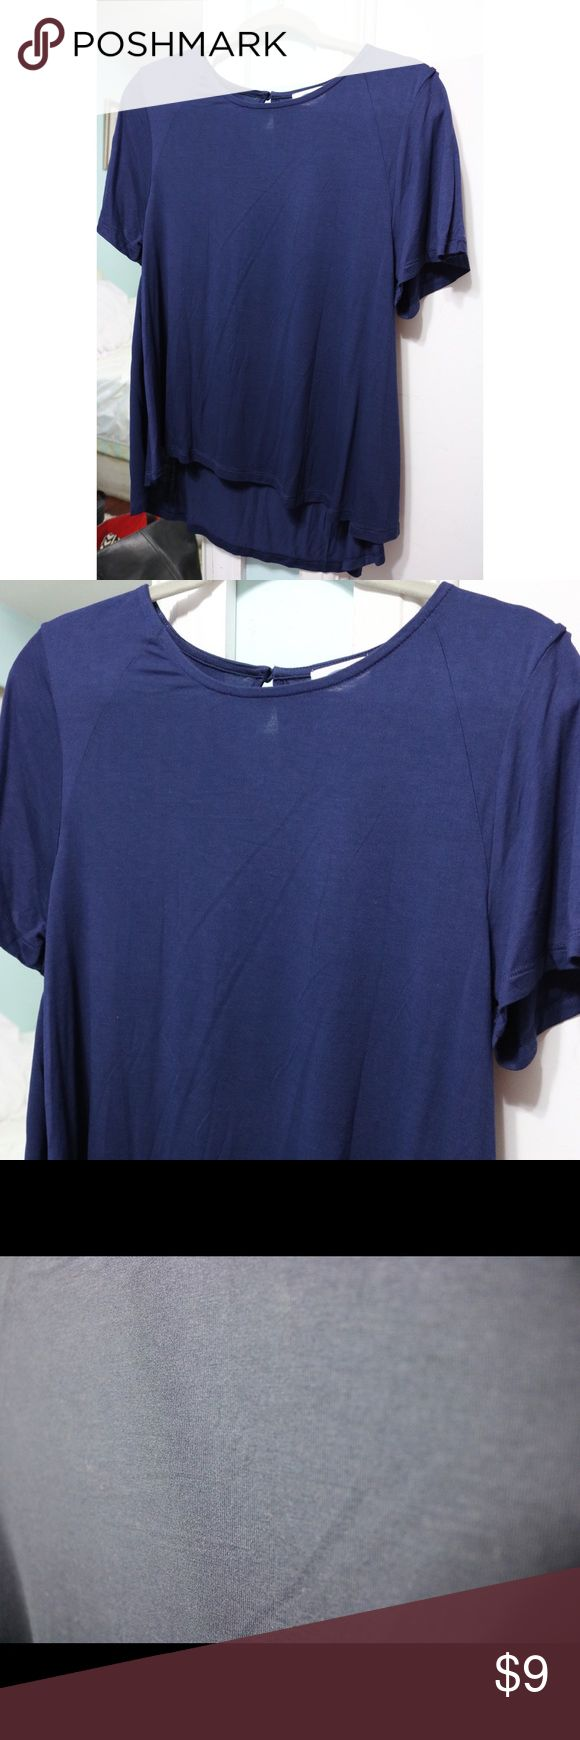 Old navy loose short sleeve top Old navy short sleeve high low top. Has button on the back. Old Navy Tops Blouses